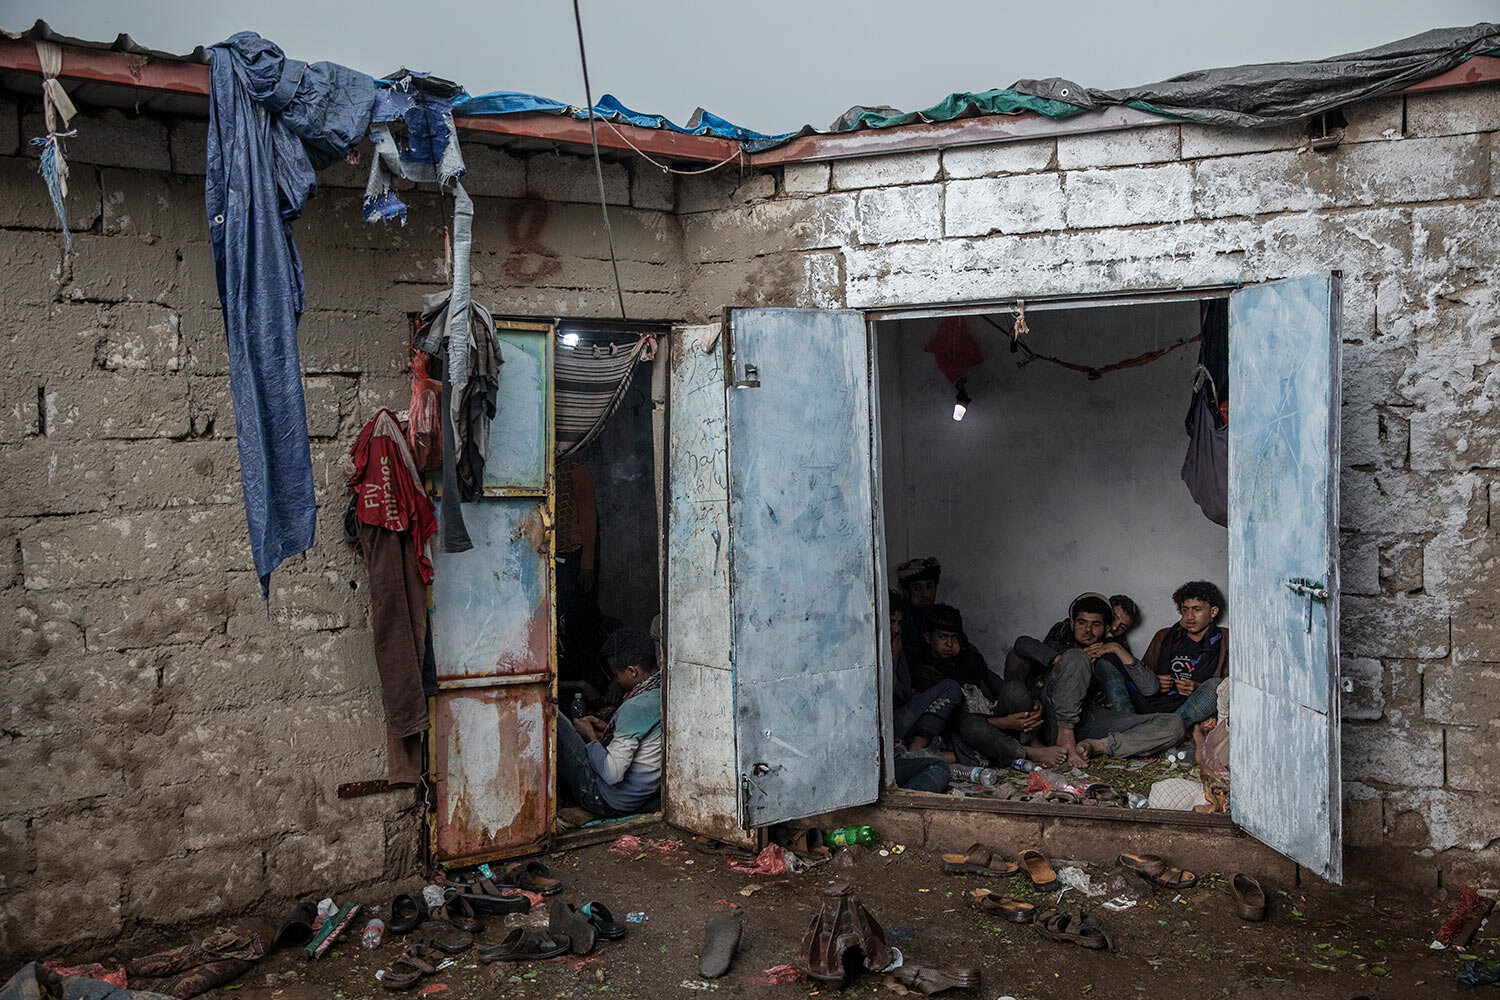 Yemenis, right, chew qat, while Ethiopian migrants, left, take shelter in a small shack at a qat market in Dhale province in Yemen. (AP Photo/Nariman El-Mofty)